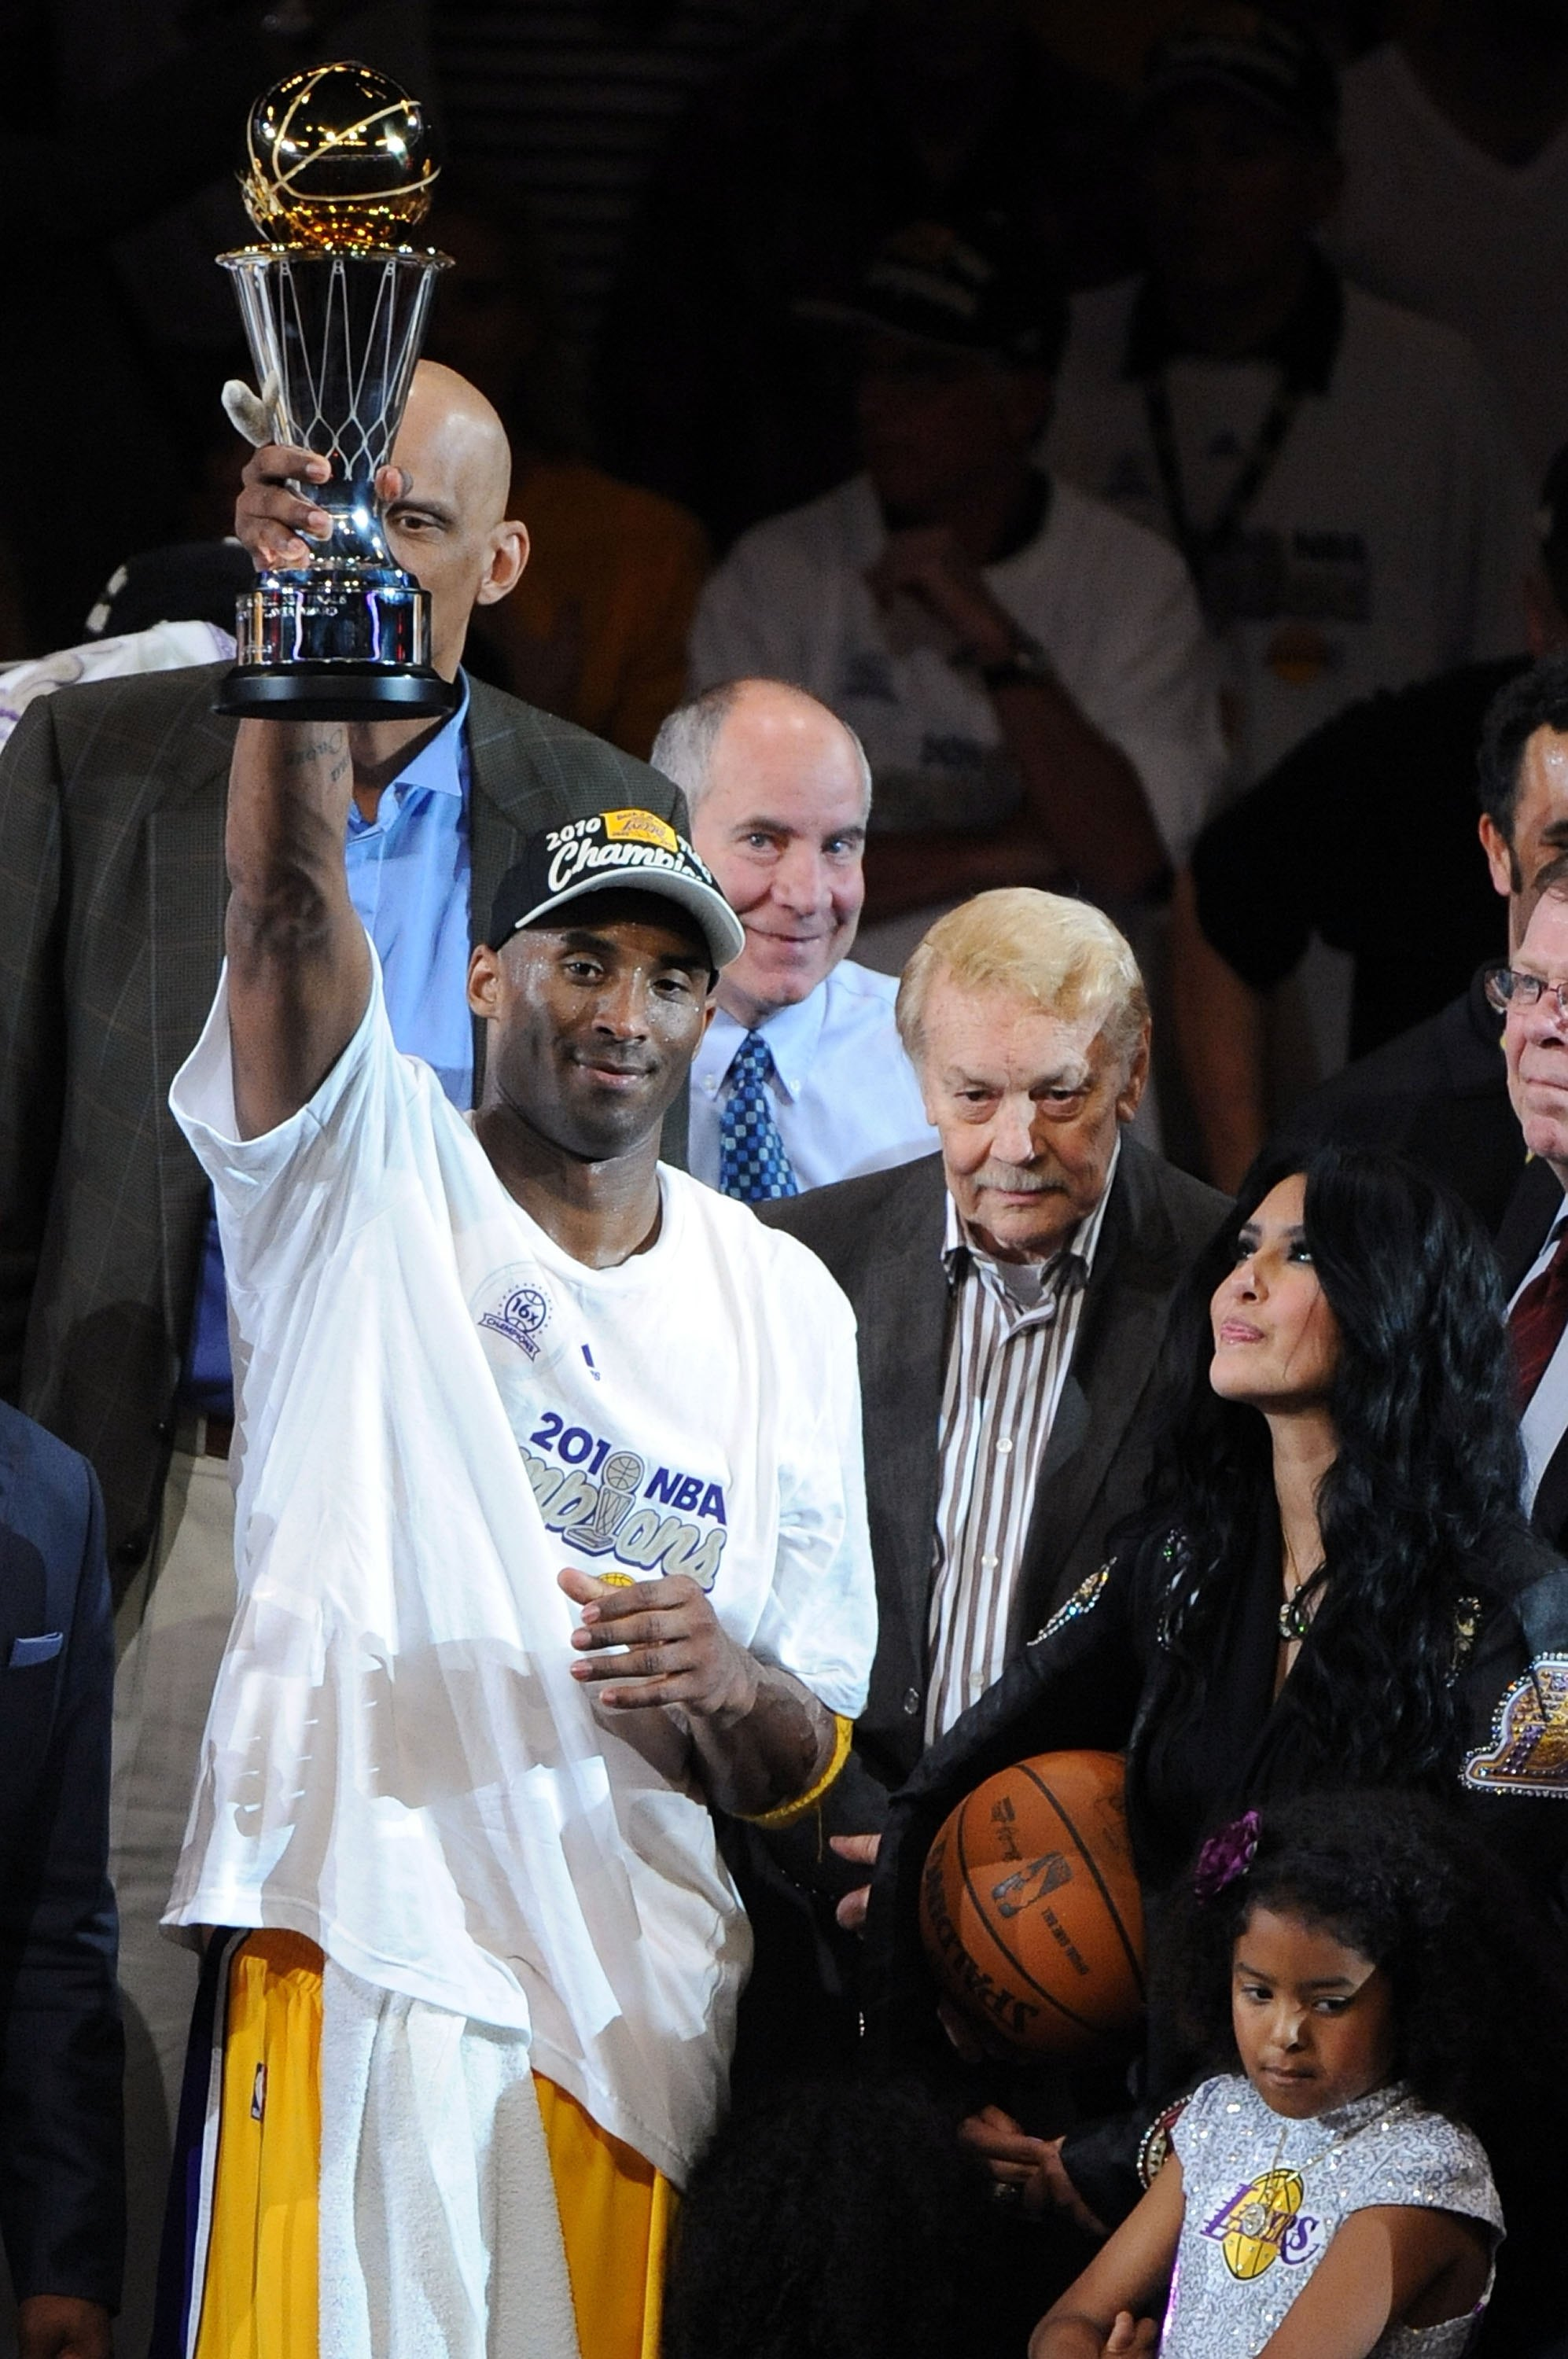 LOS ANGELES, CA - JUNE 17:  Kobe Bryant #24 of the Los Angeles Lakers holds up the Bill Russell Finals MVP trophy alongside team owner Dr. Jerry Buss and Bryant's wife Vanessa after the Lakers defeated the Boston Celtics 83-79 in Game Seven of the 2010 NB